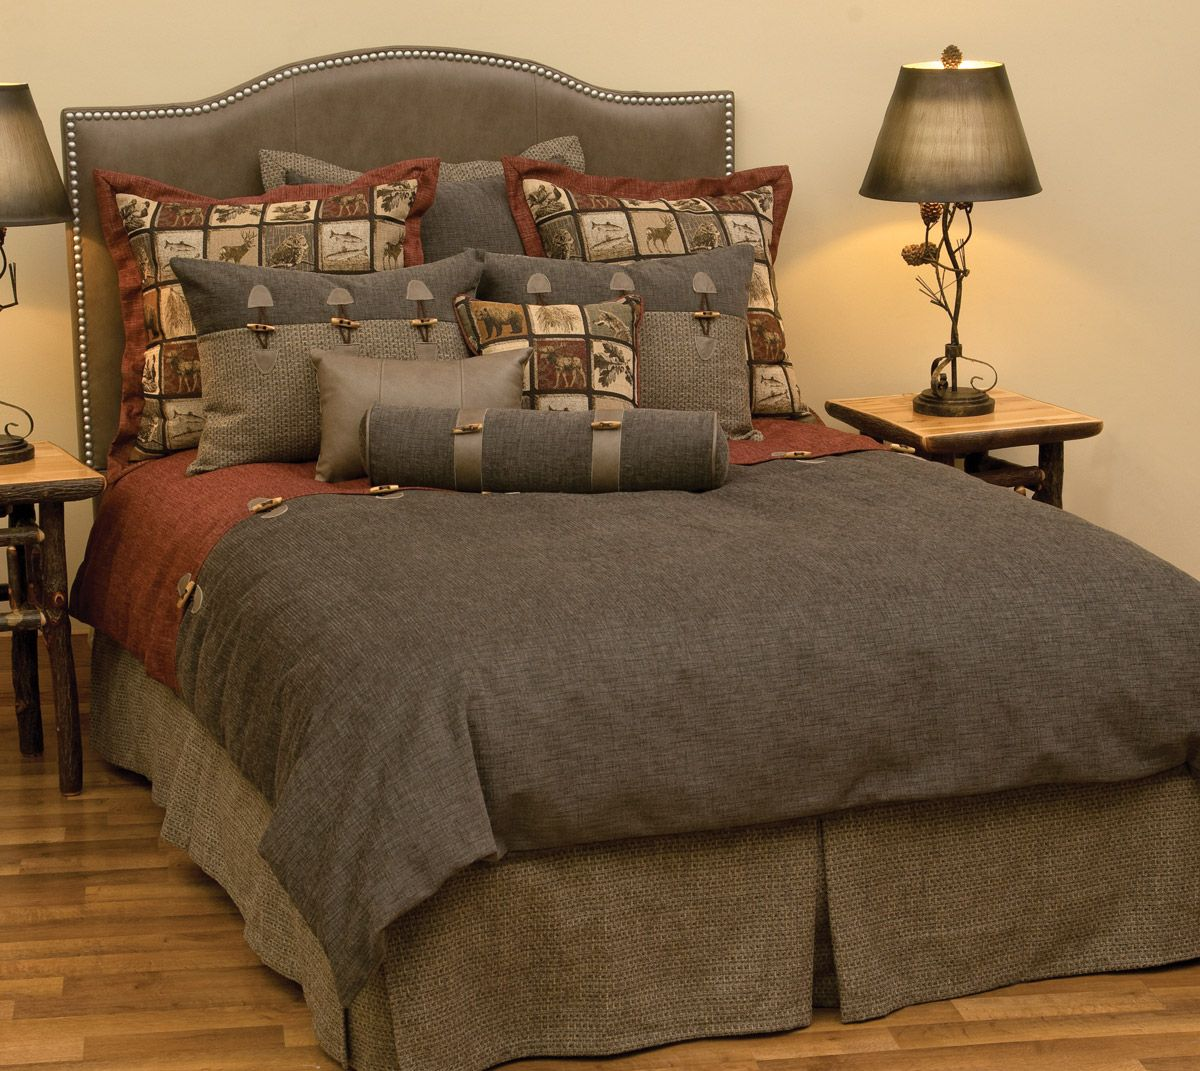 Silver Thicket Deluxe Bed Set - Super King - CLEARANCE